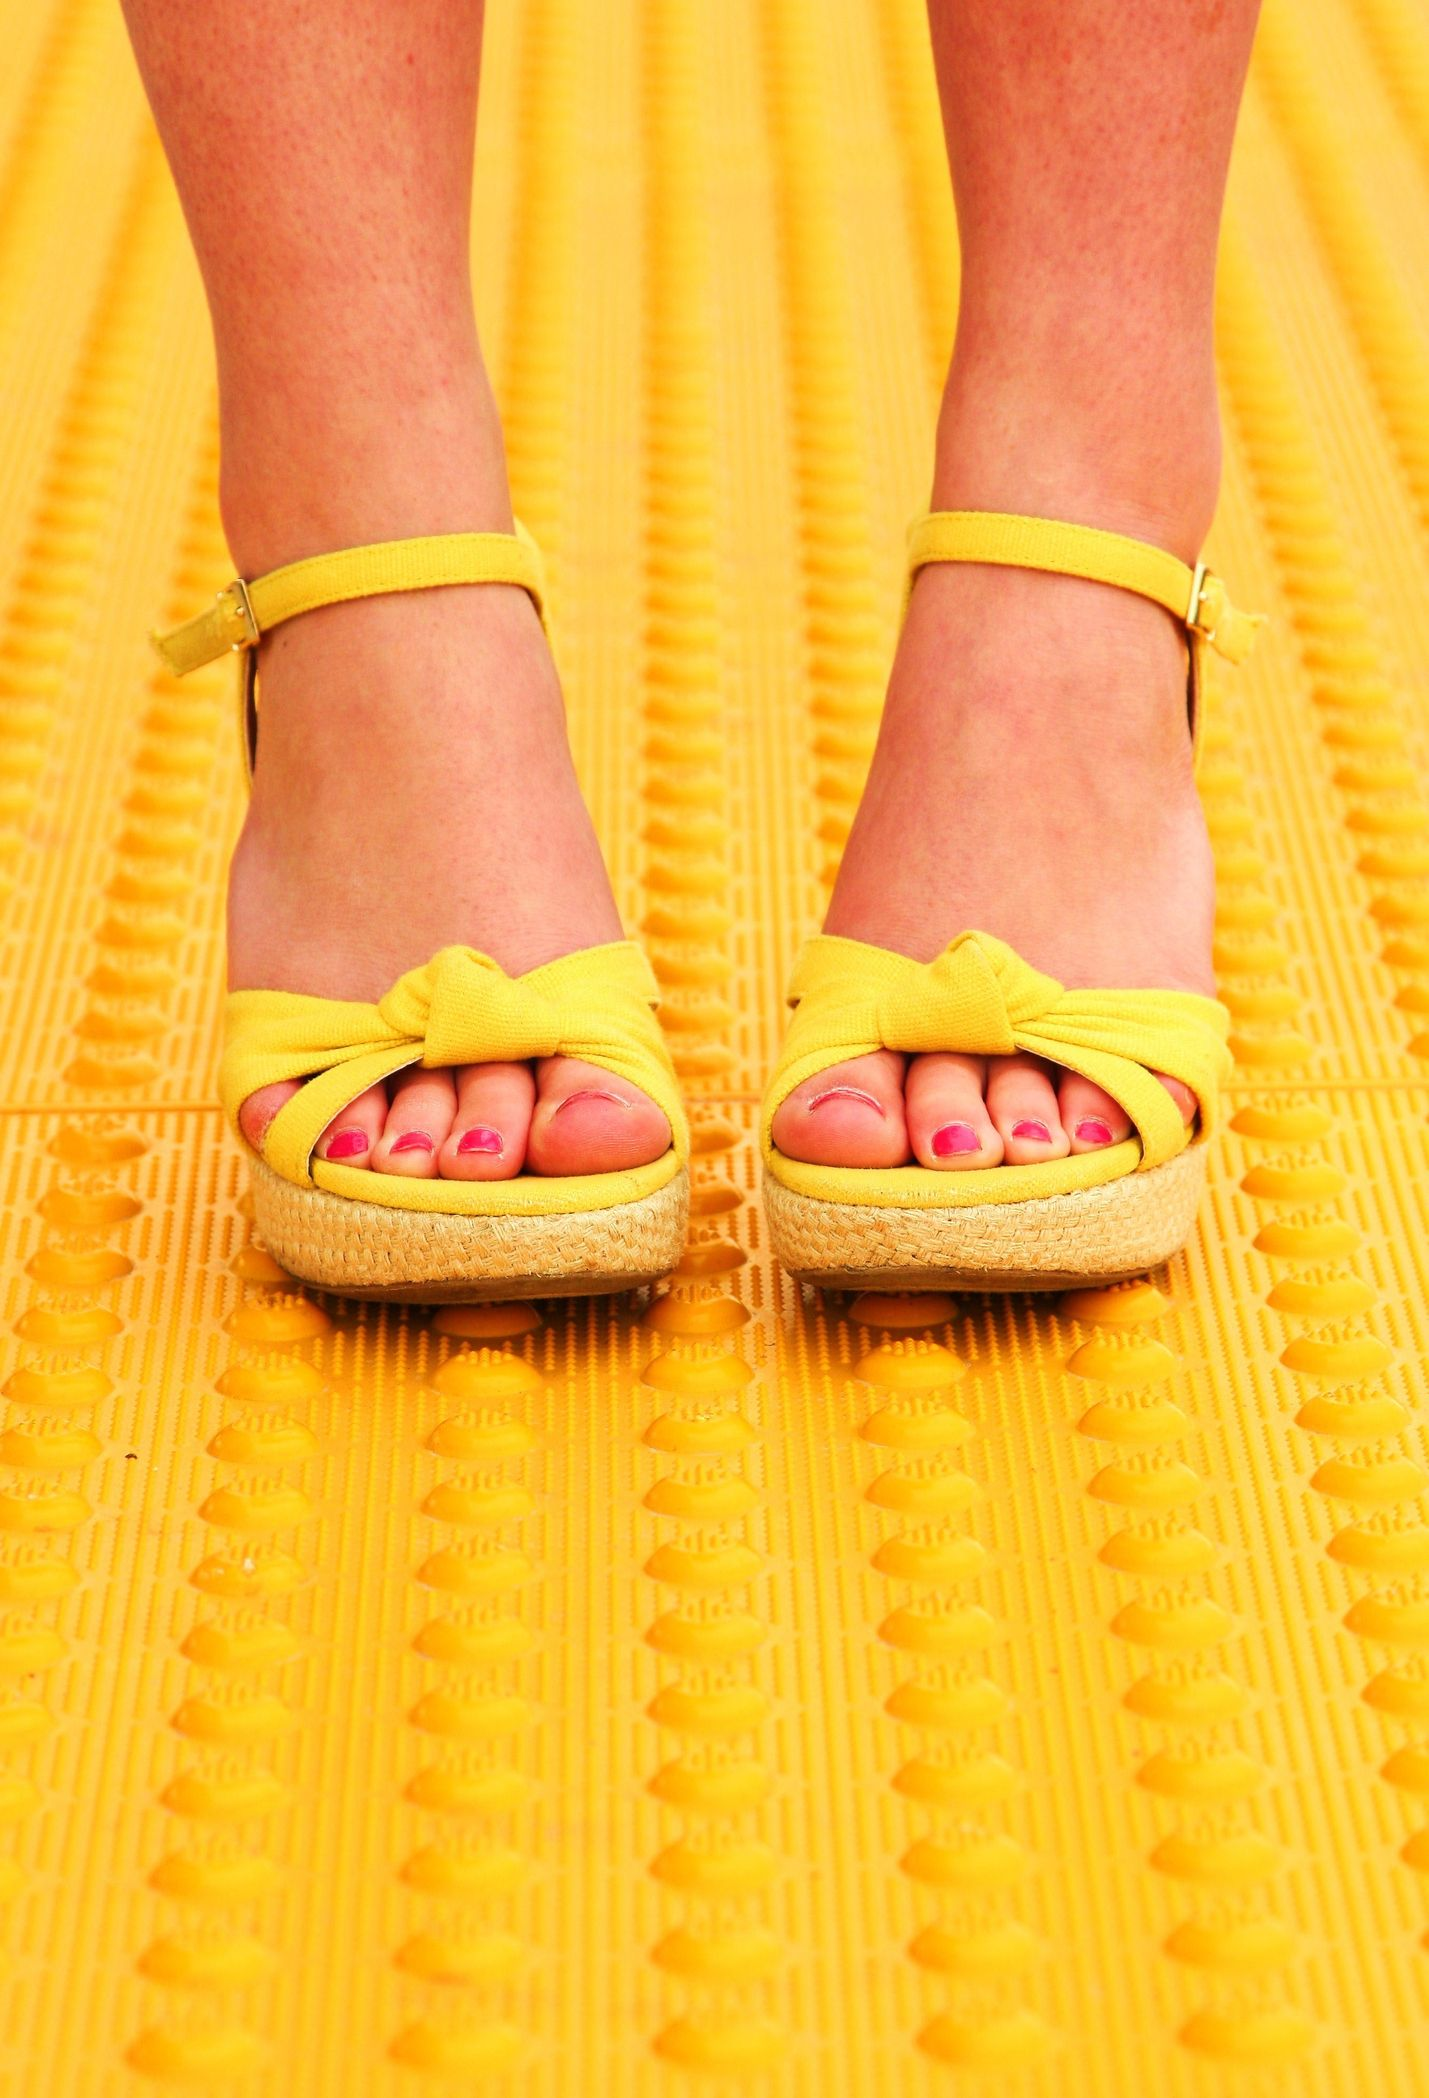 The 7 essential steps to summer-ready feet